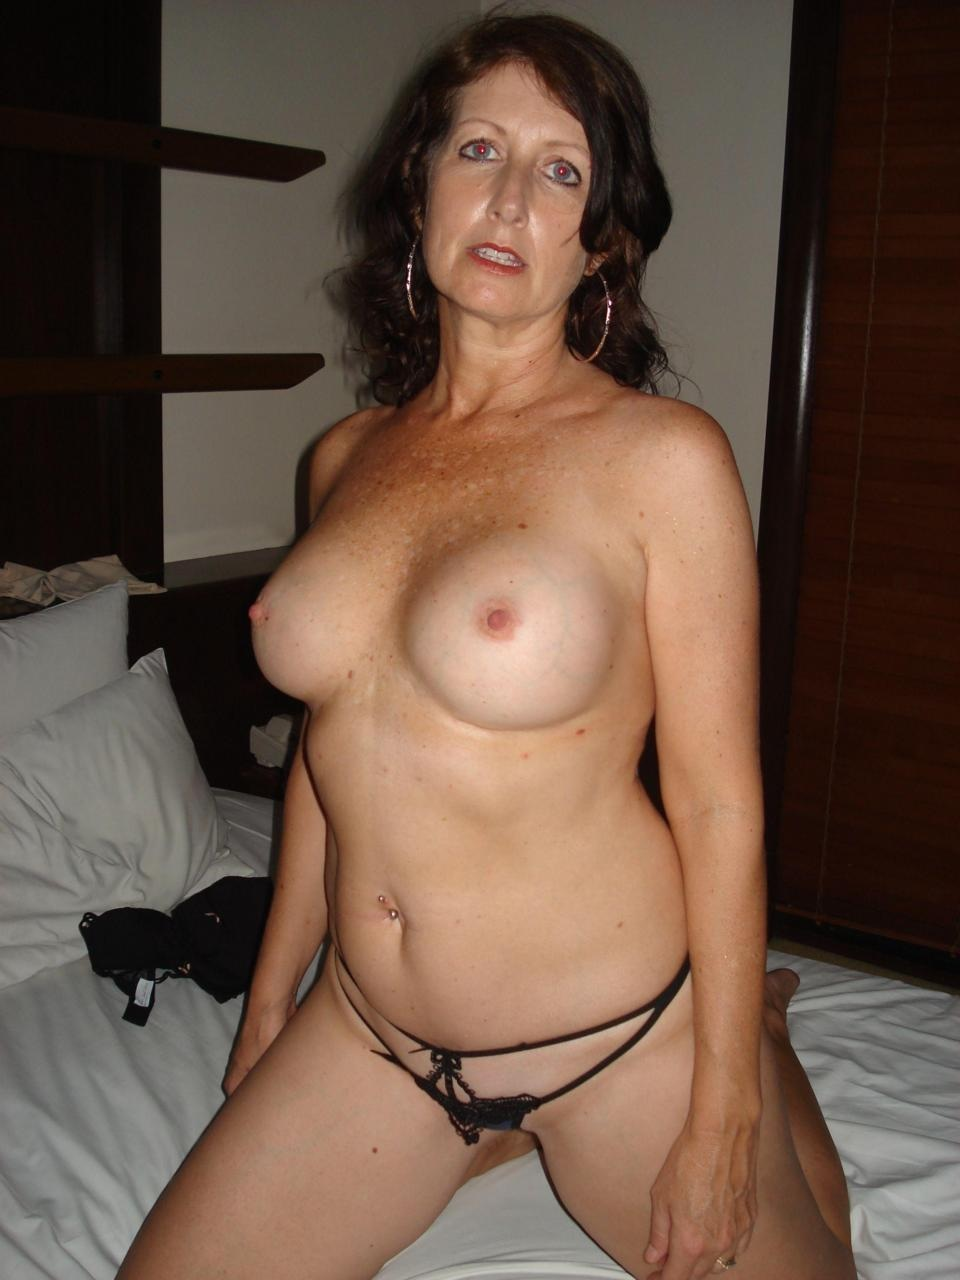 svensk milf dating 50 plus